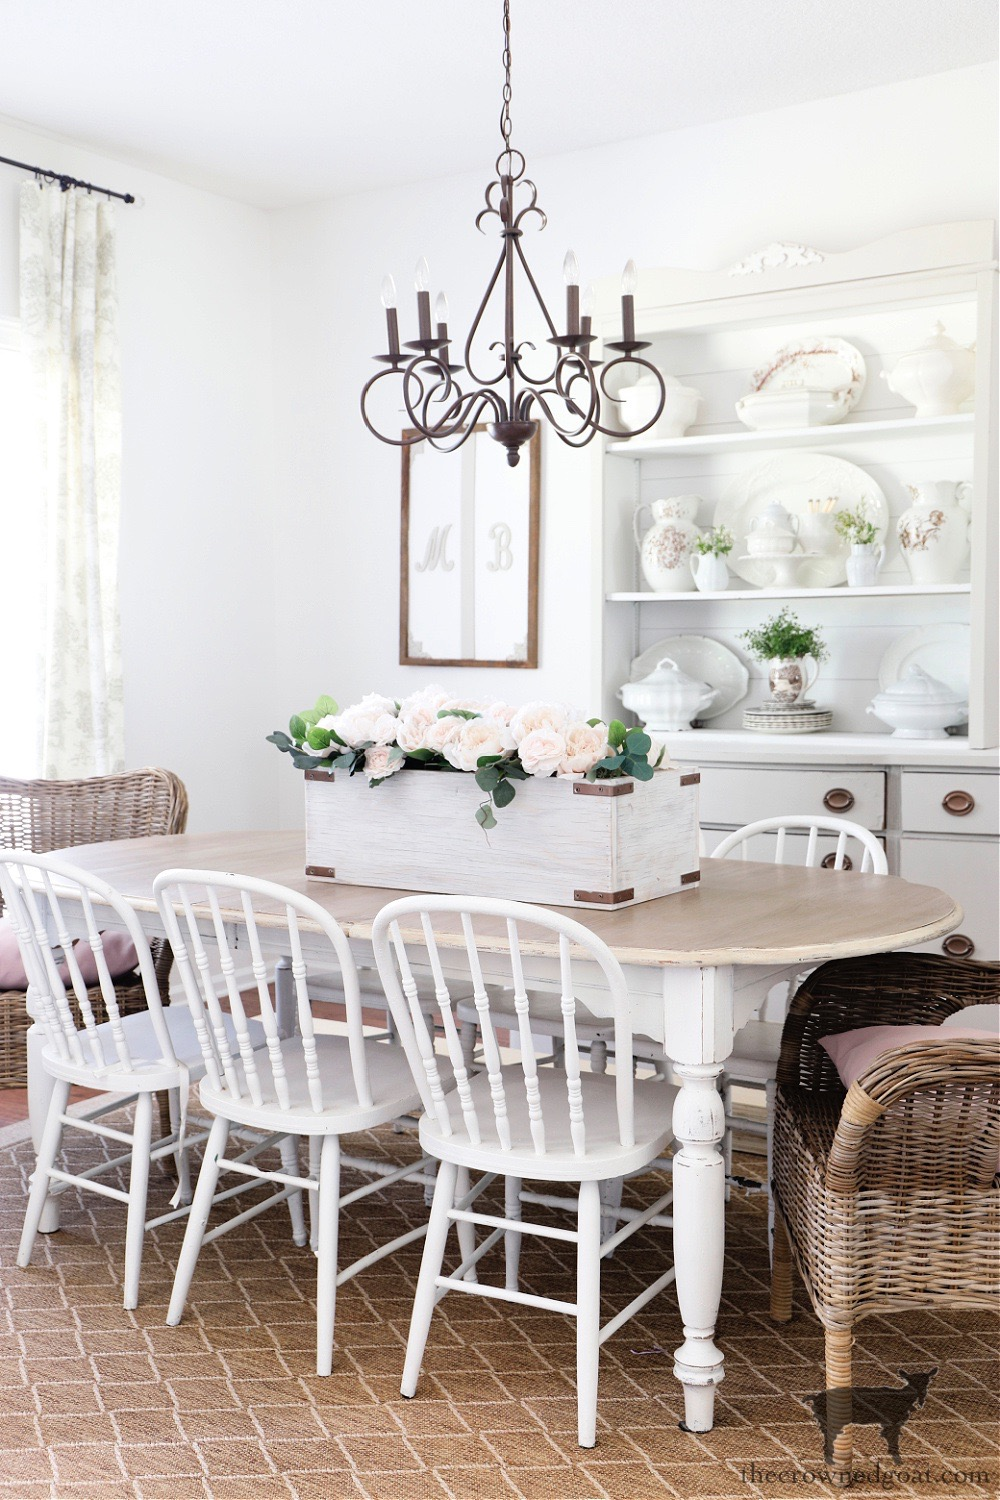 Housekeeping Habits We Practice Every Day-Dining Room-The Crowned Goat